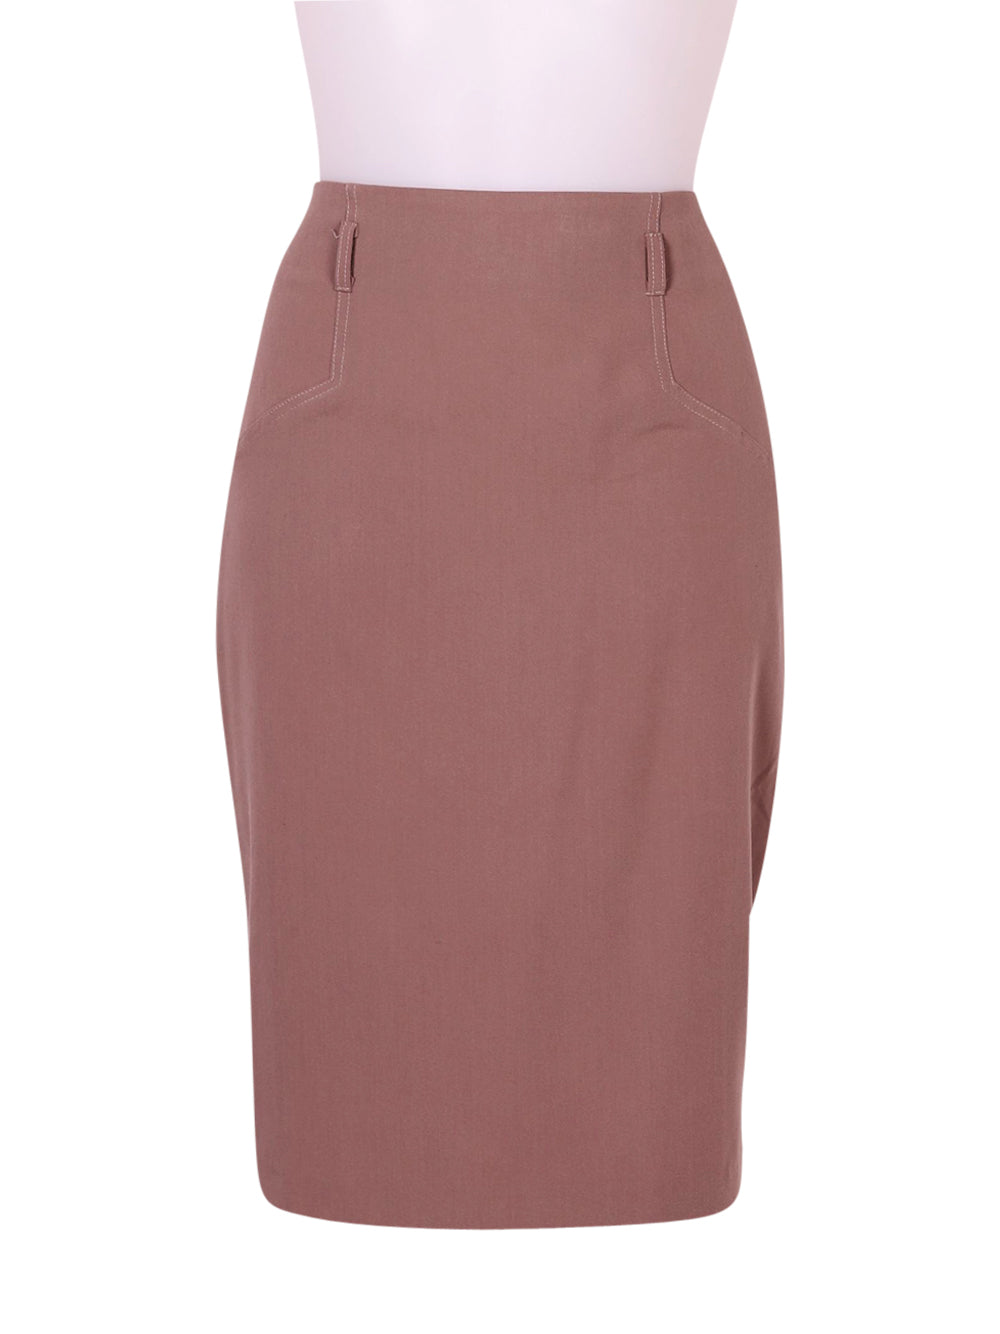 Front photo of Preloved Asos Beige Woman's skirt - size 8/S